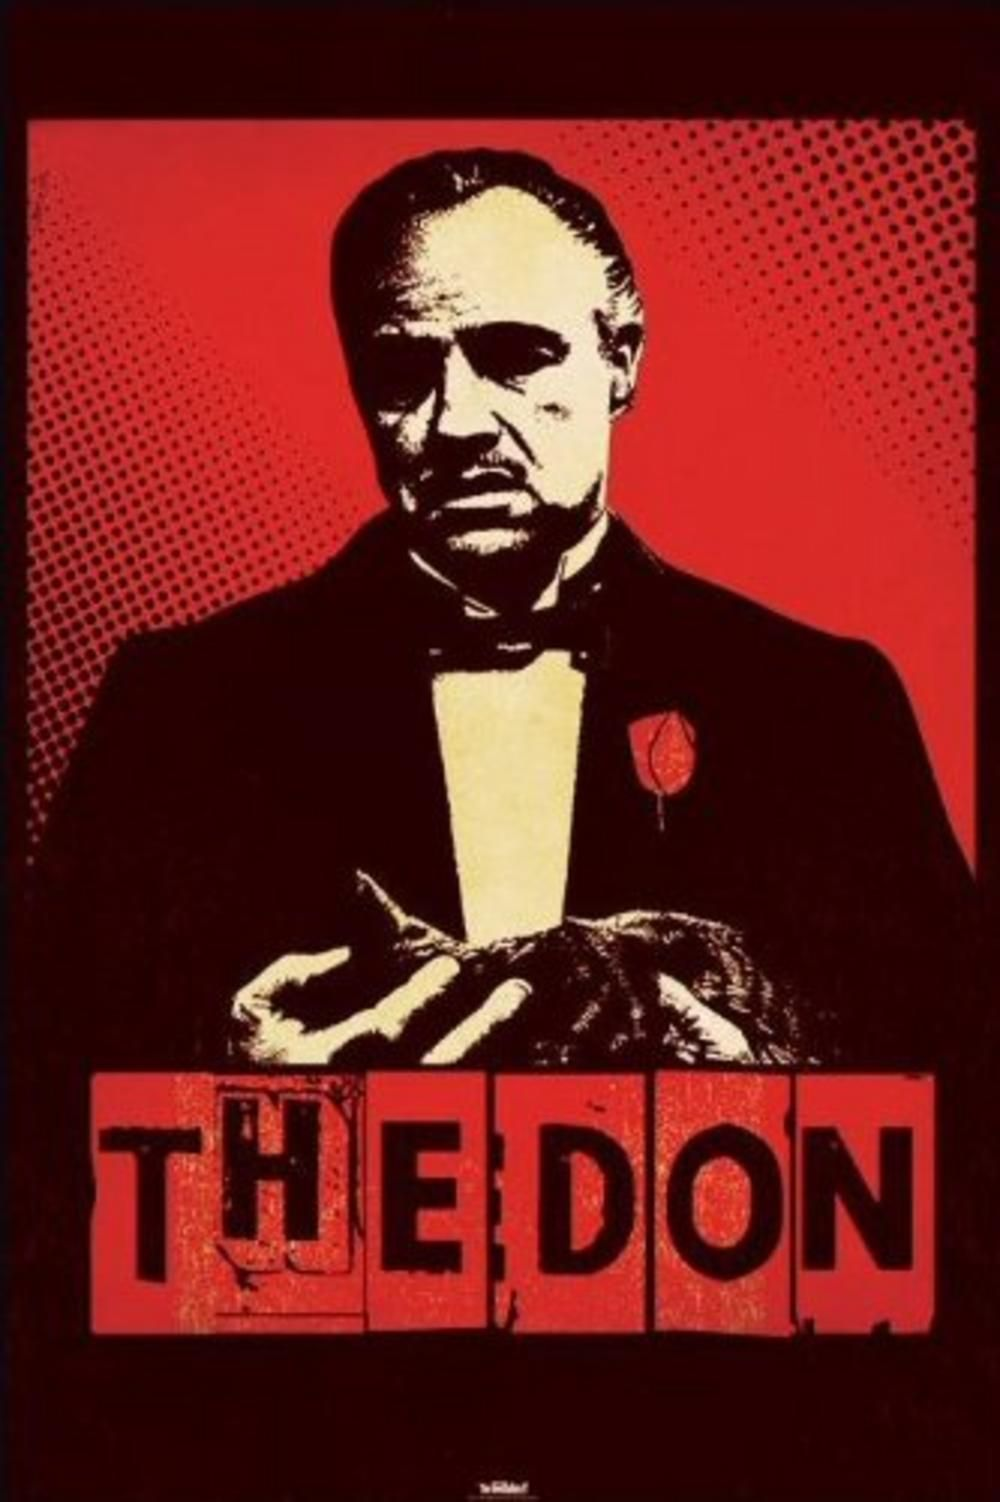 Pin De Jaymeallen Nation Em The Godfather Estampa De Cartaz Poderoso Chefao Cartaz